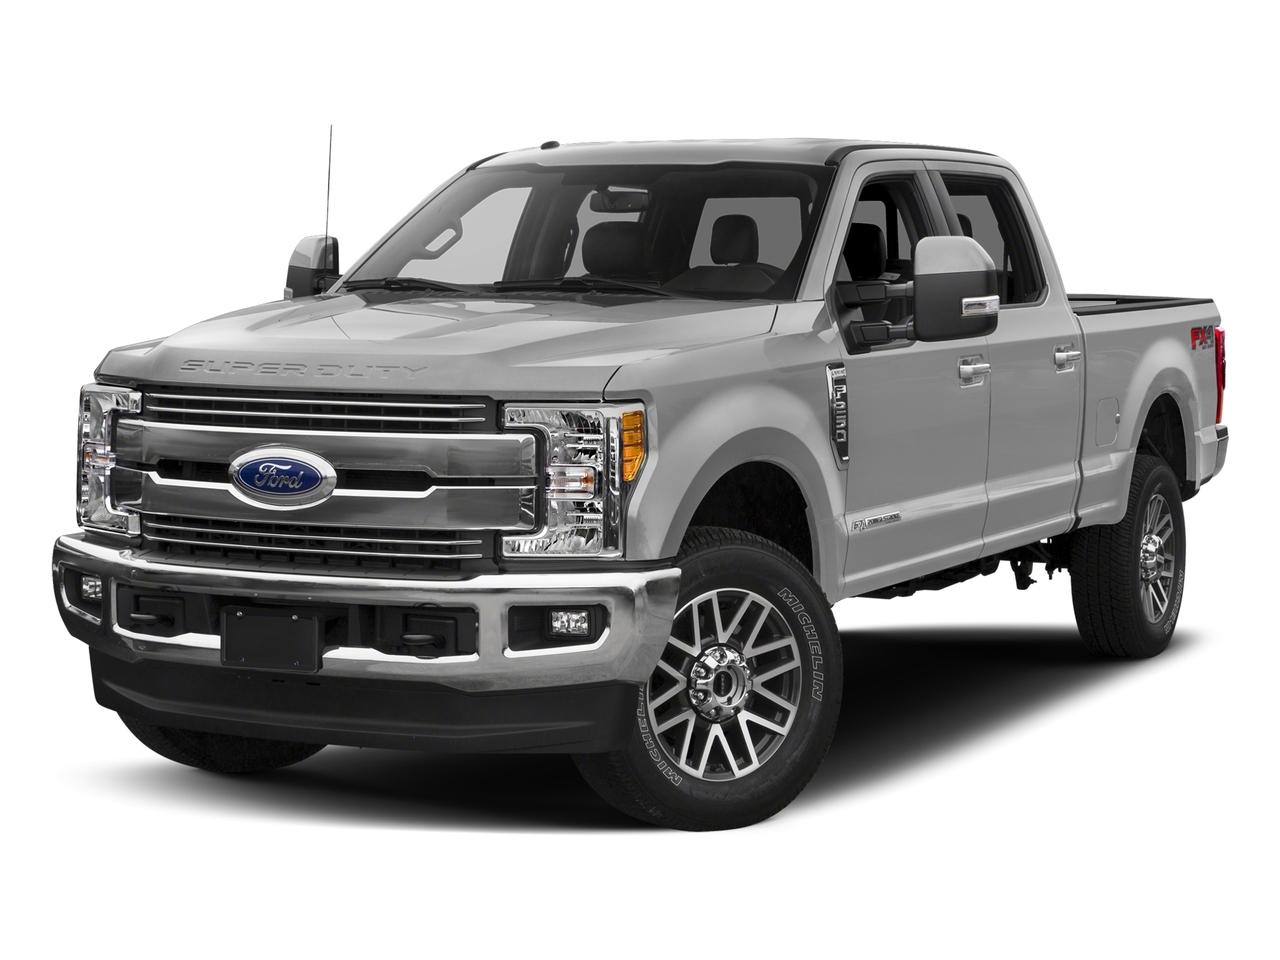 2017 Ford Super Duty F-250 SRW Vehicle Photo in Fort Worth, TX 76116